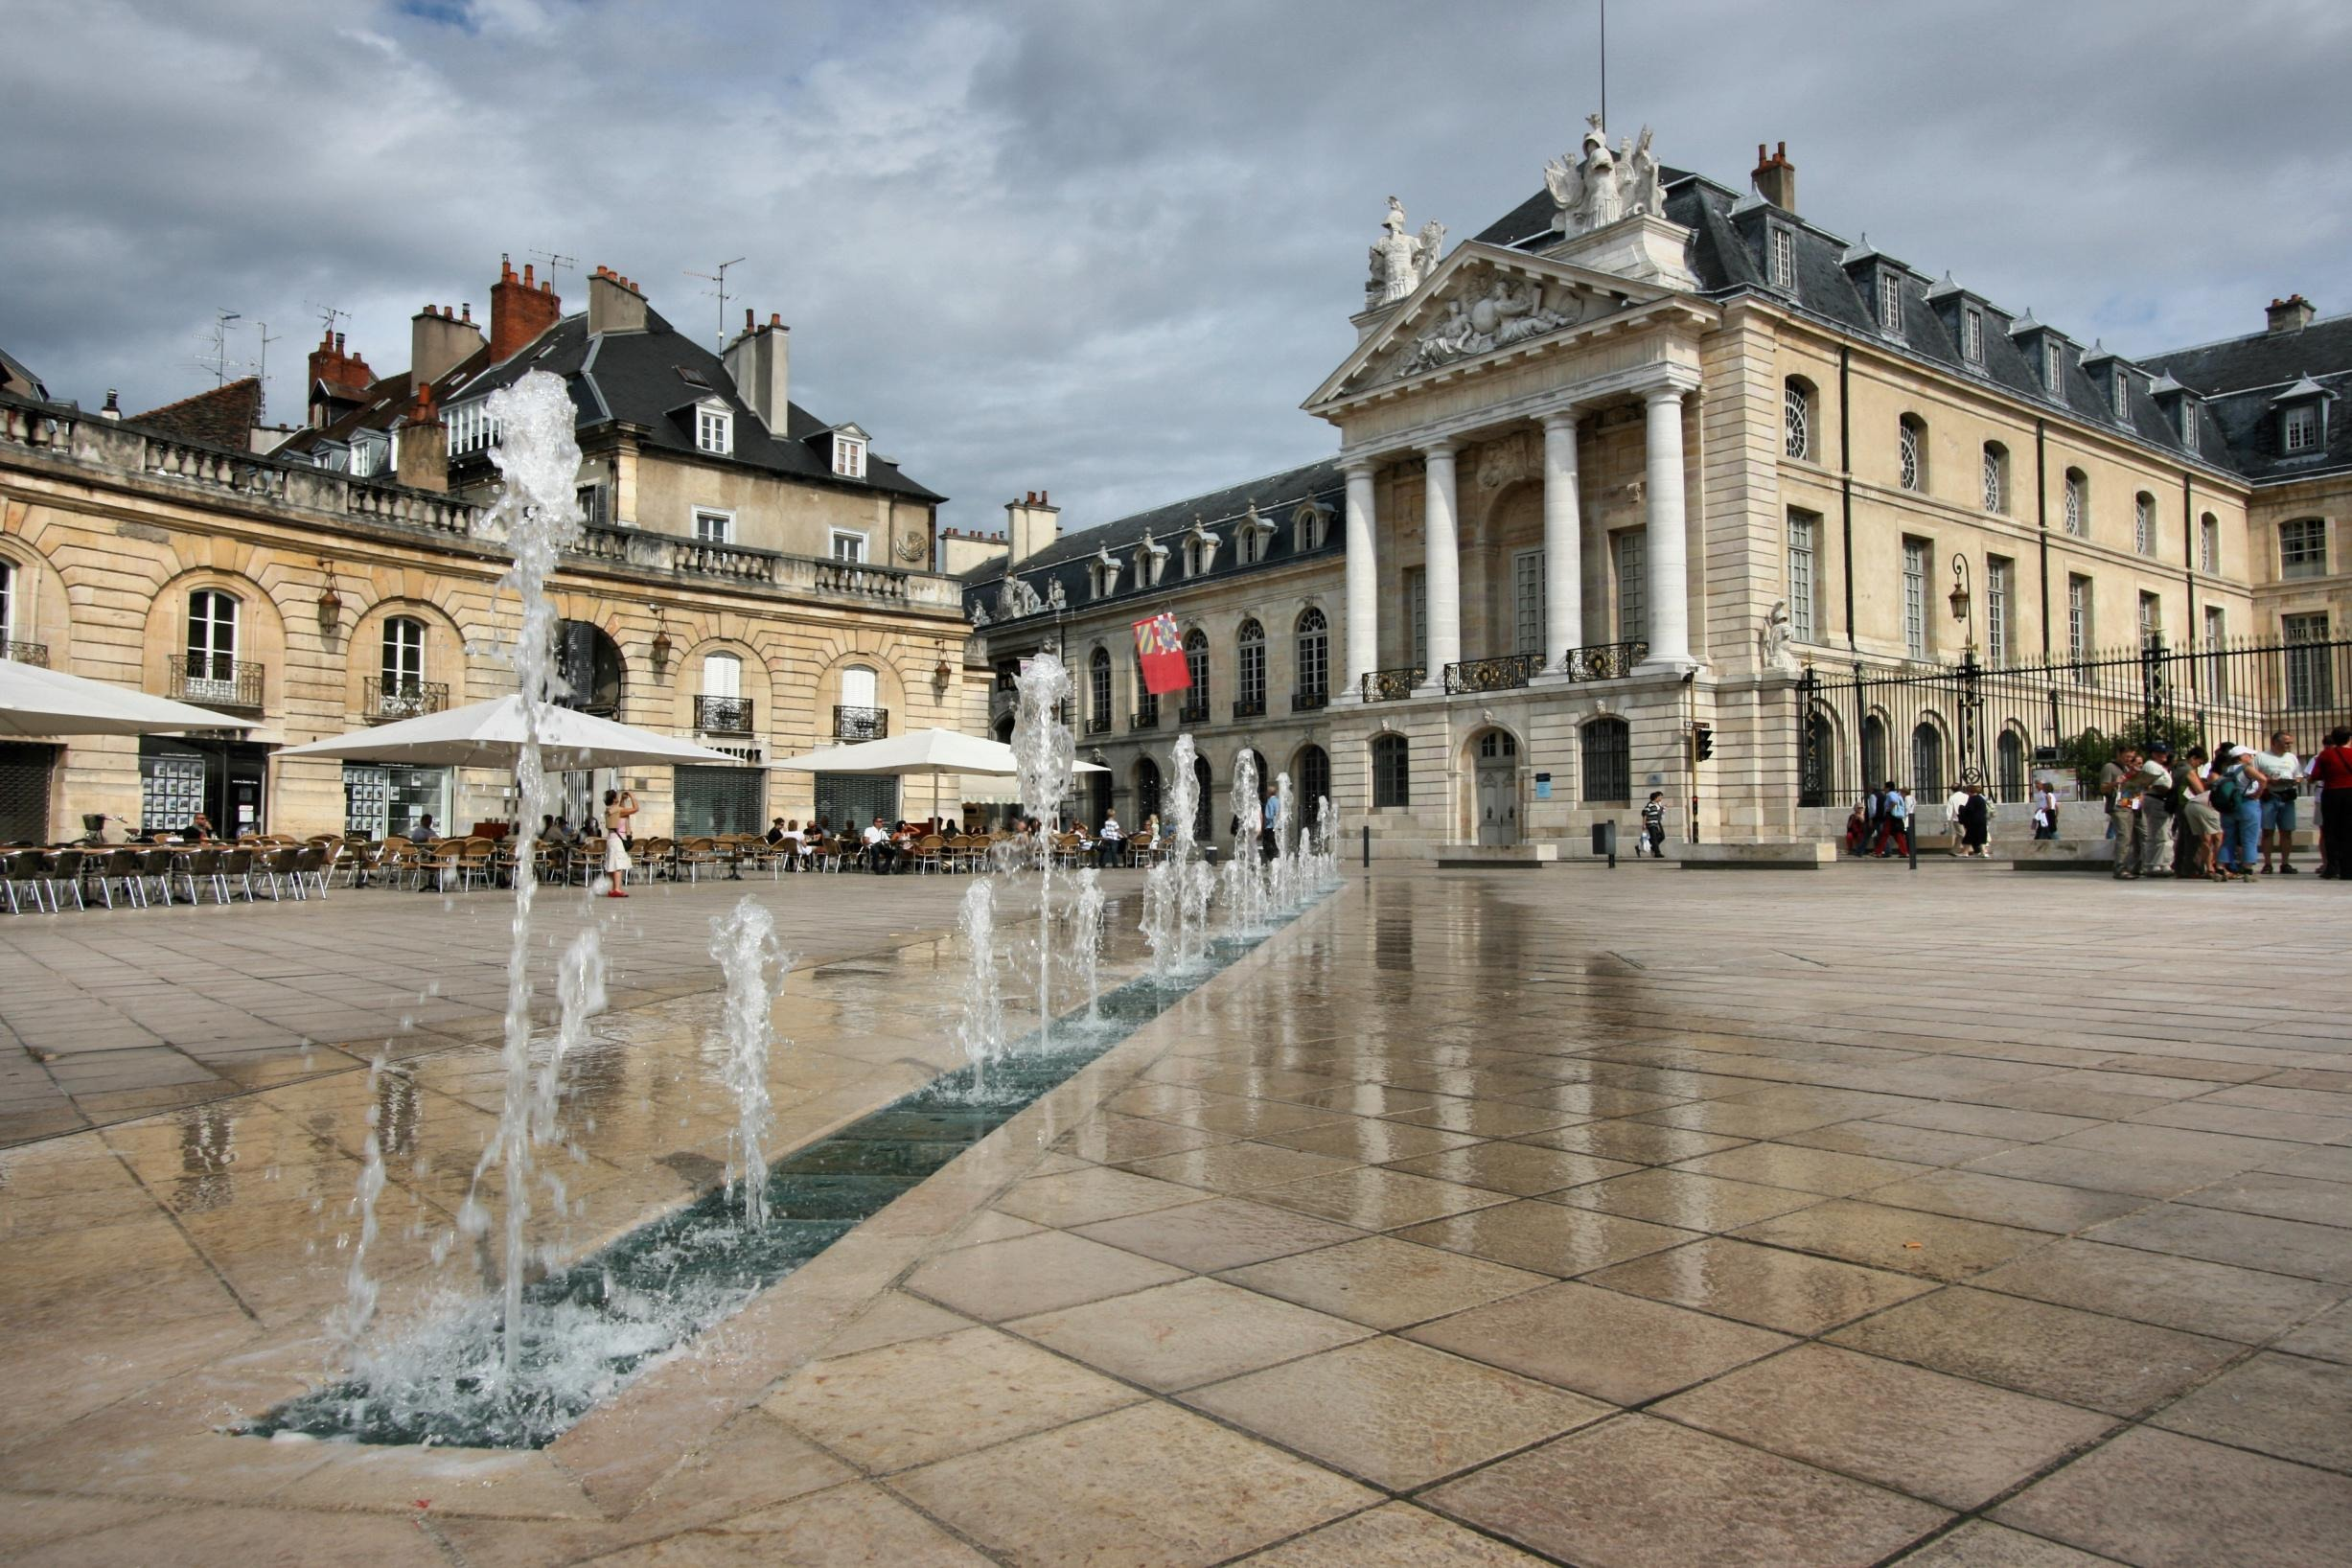 How to Spend 3 Days in Dijon